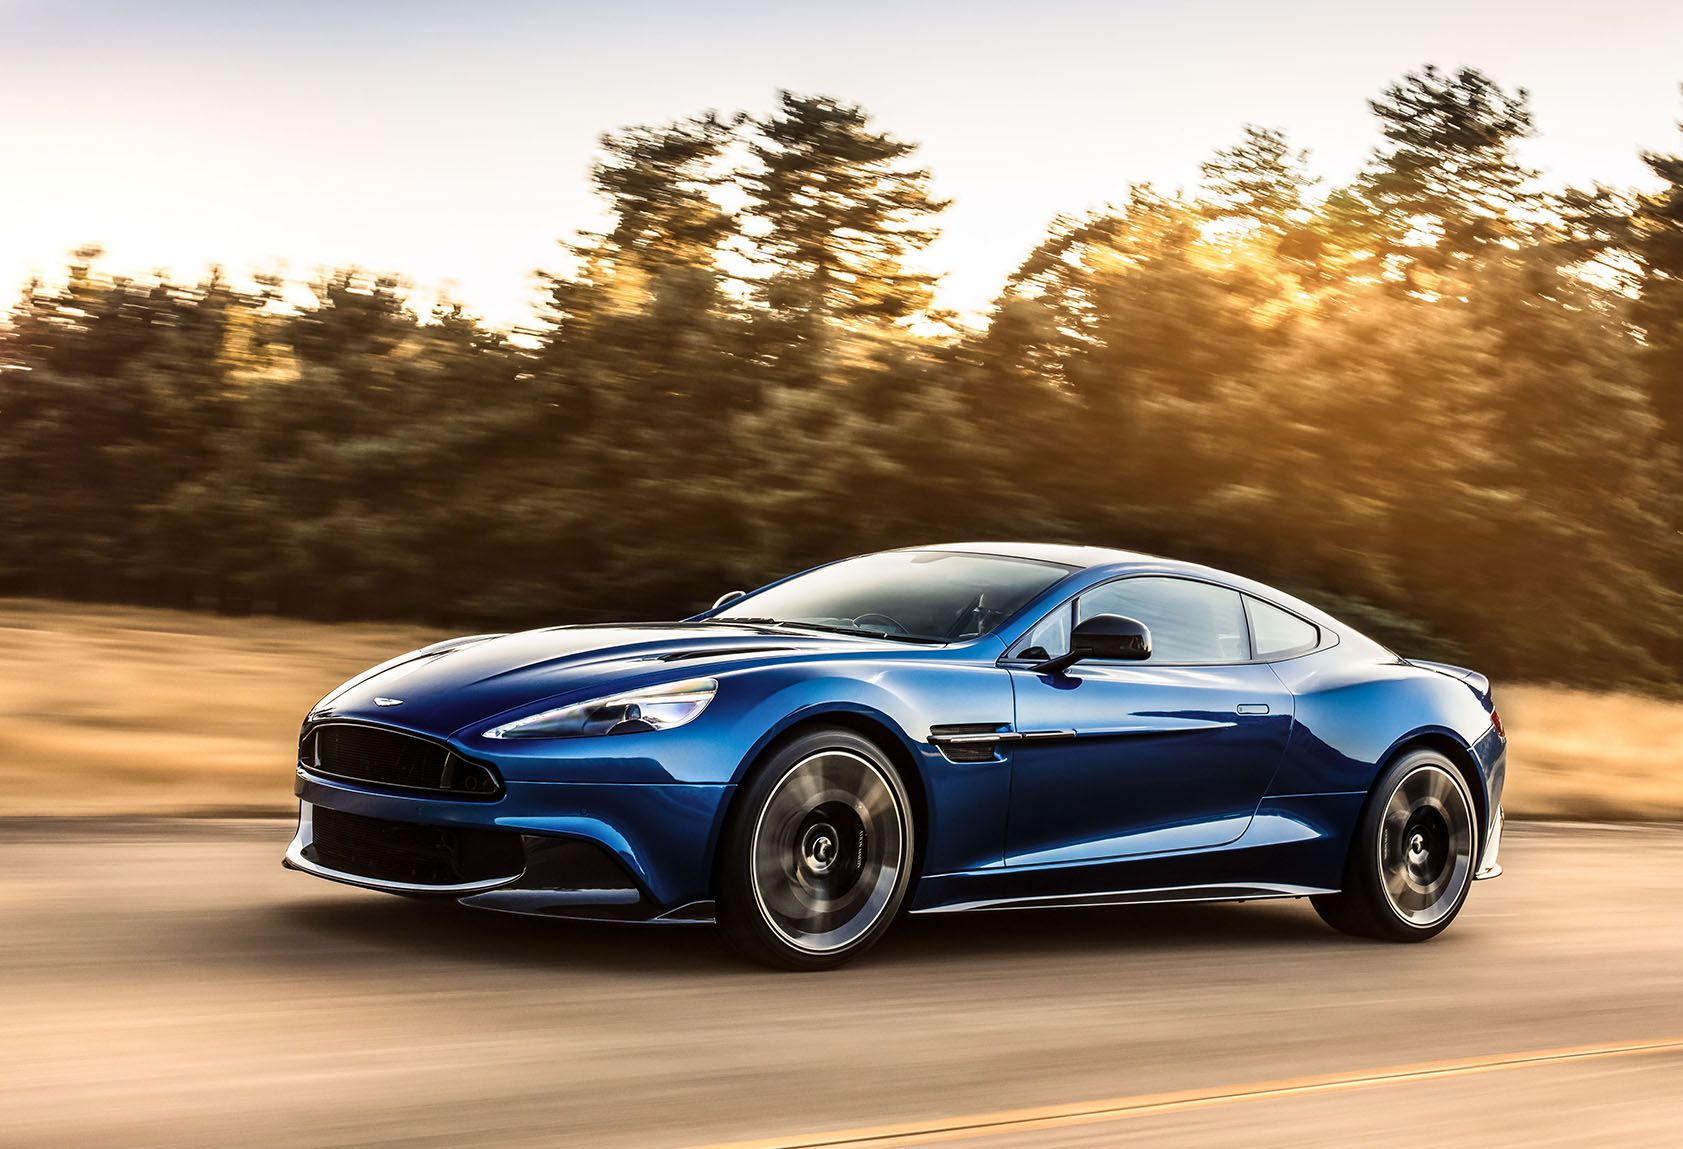 2018 Aston Martin Vanquish S Widescreen Wallpaper Automotive 1683x1149